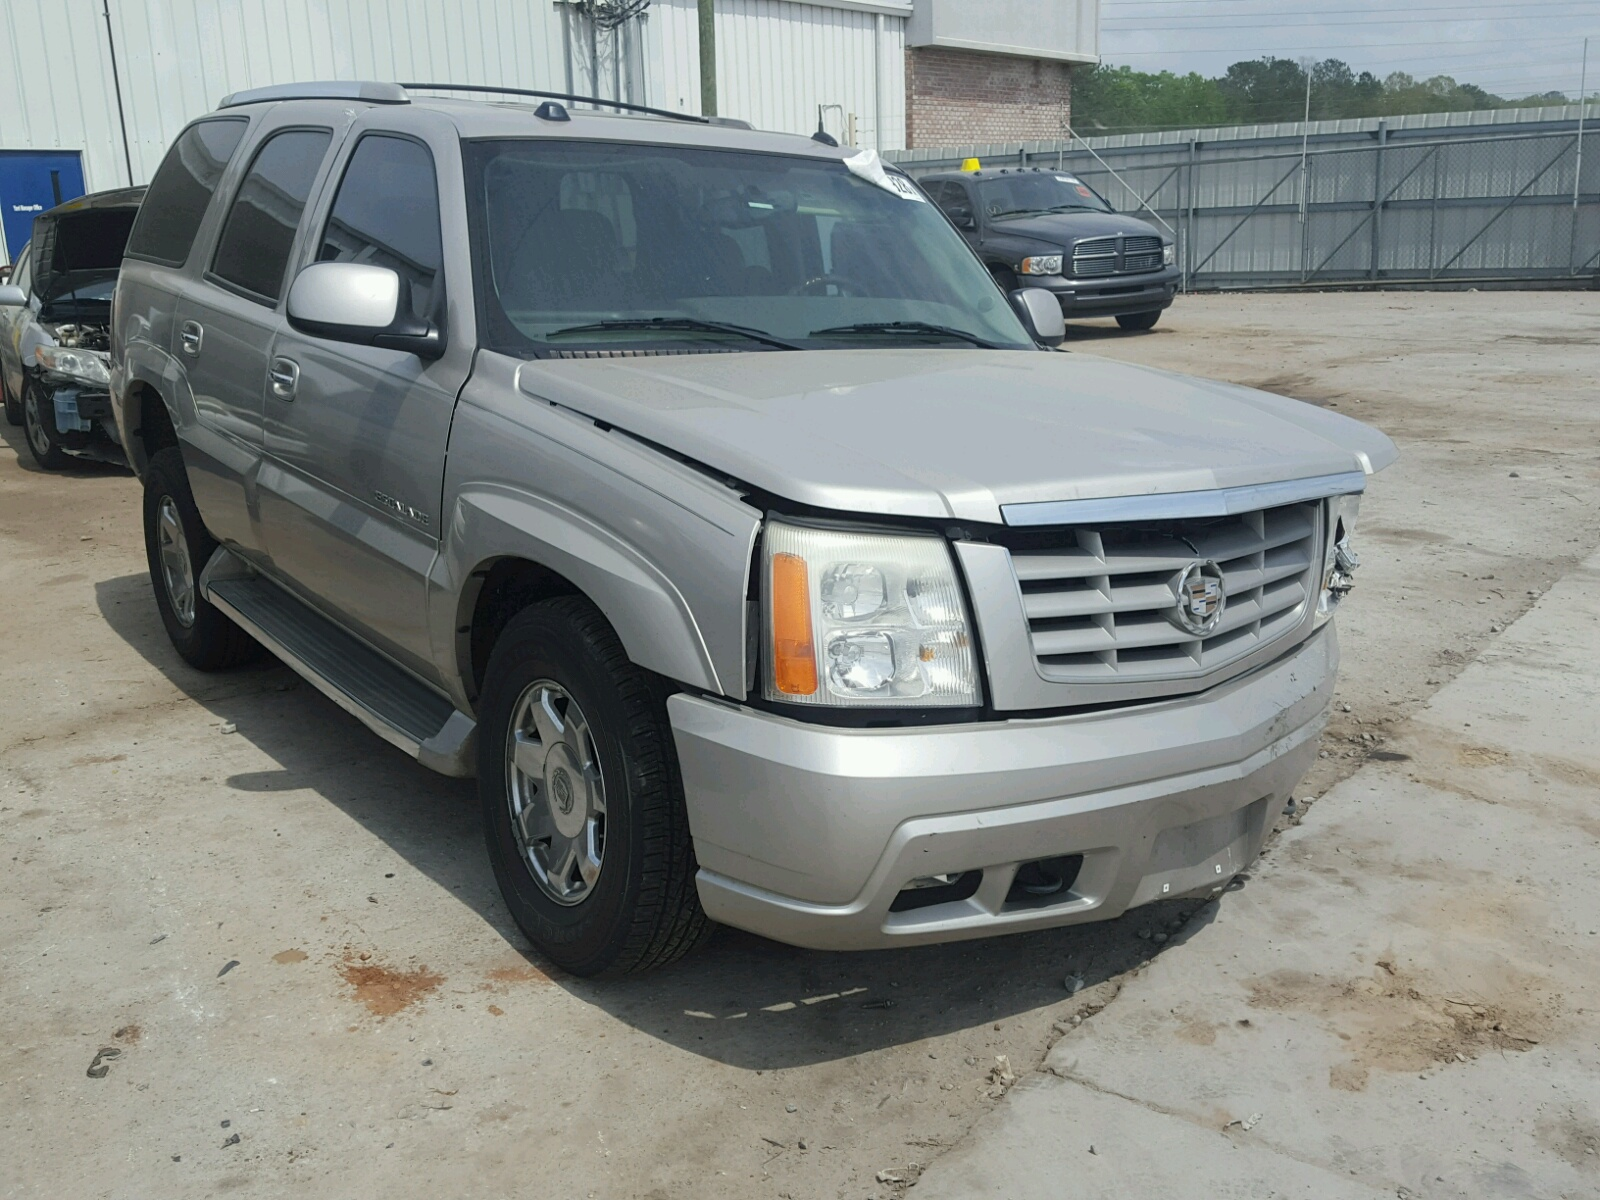 ab vehicle cadillac vehiclesearchresults escalade calgary photo vehicles for in sale edmonton